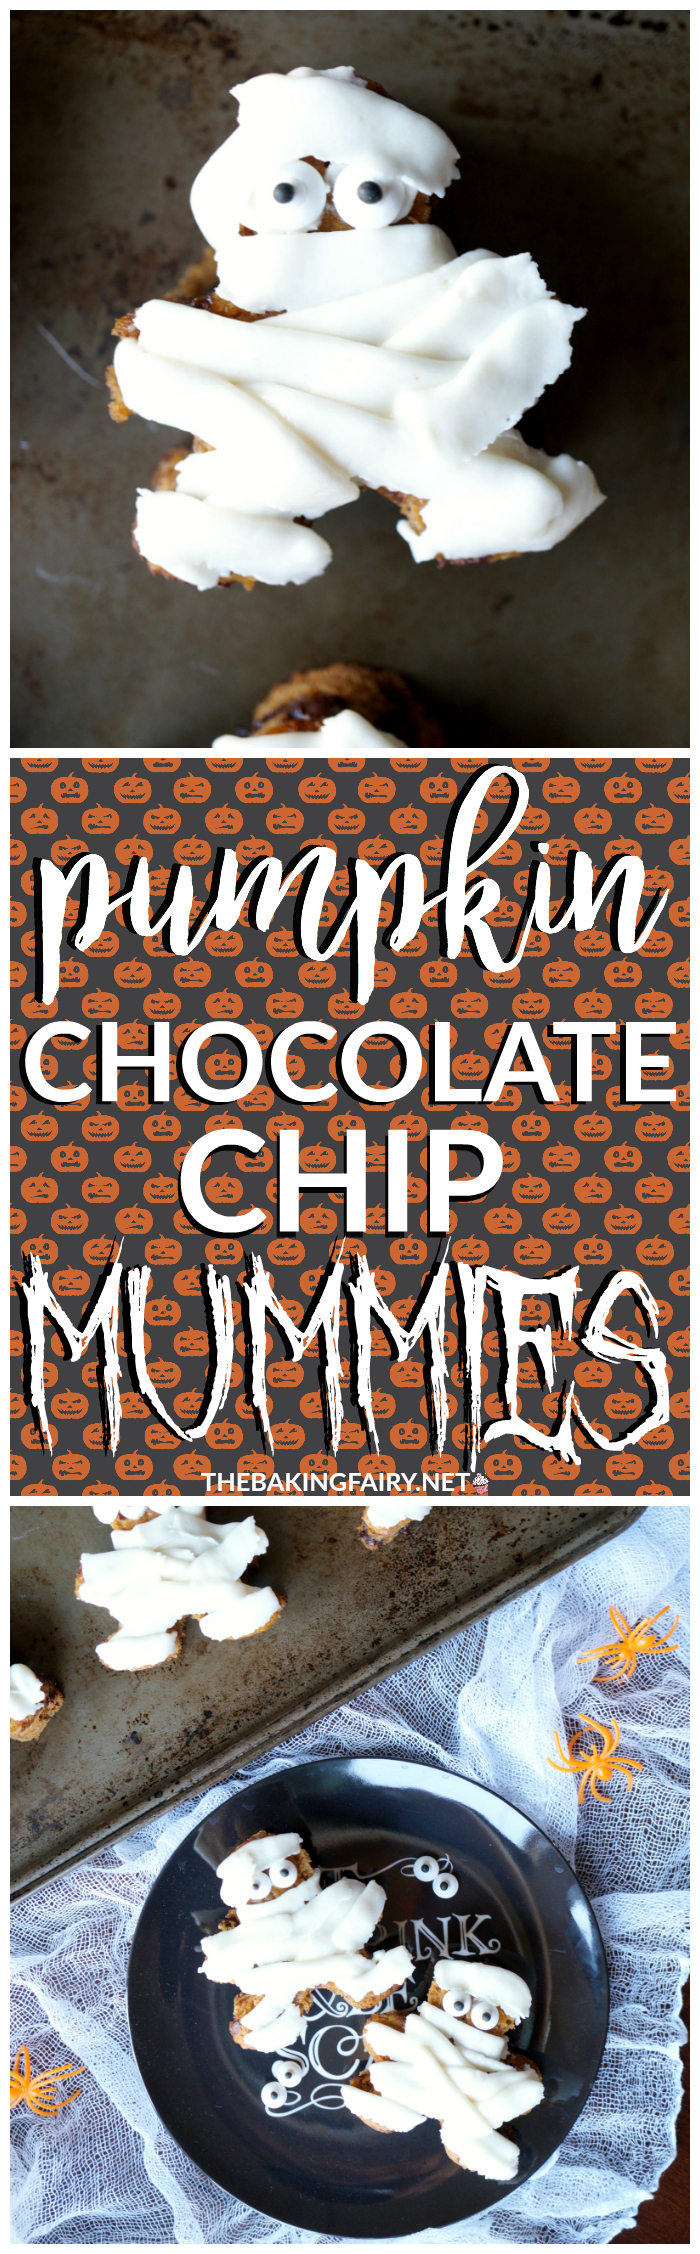 pumpkin chocolate chip mummies | The Baking Fairy